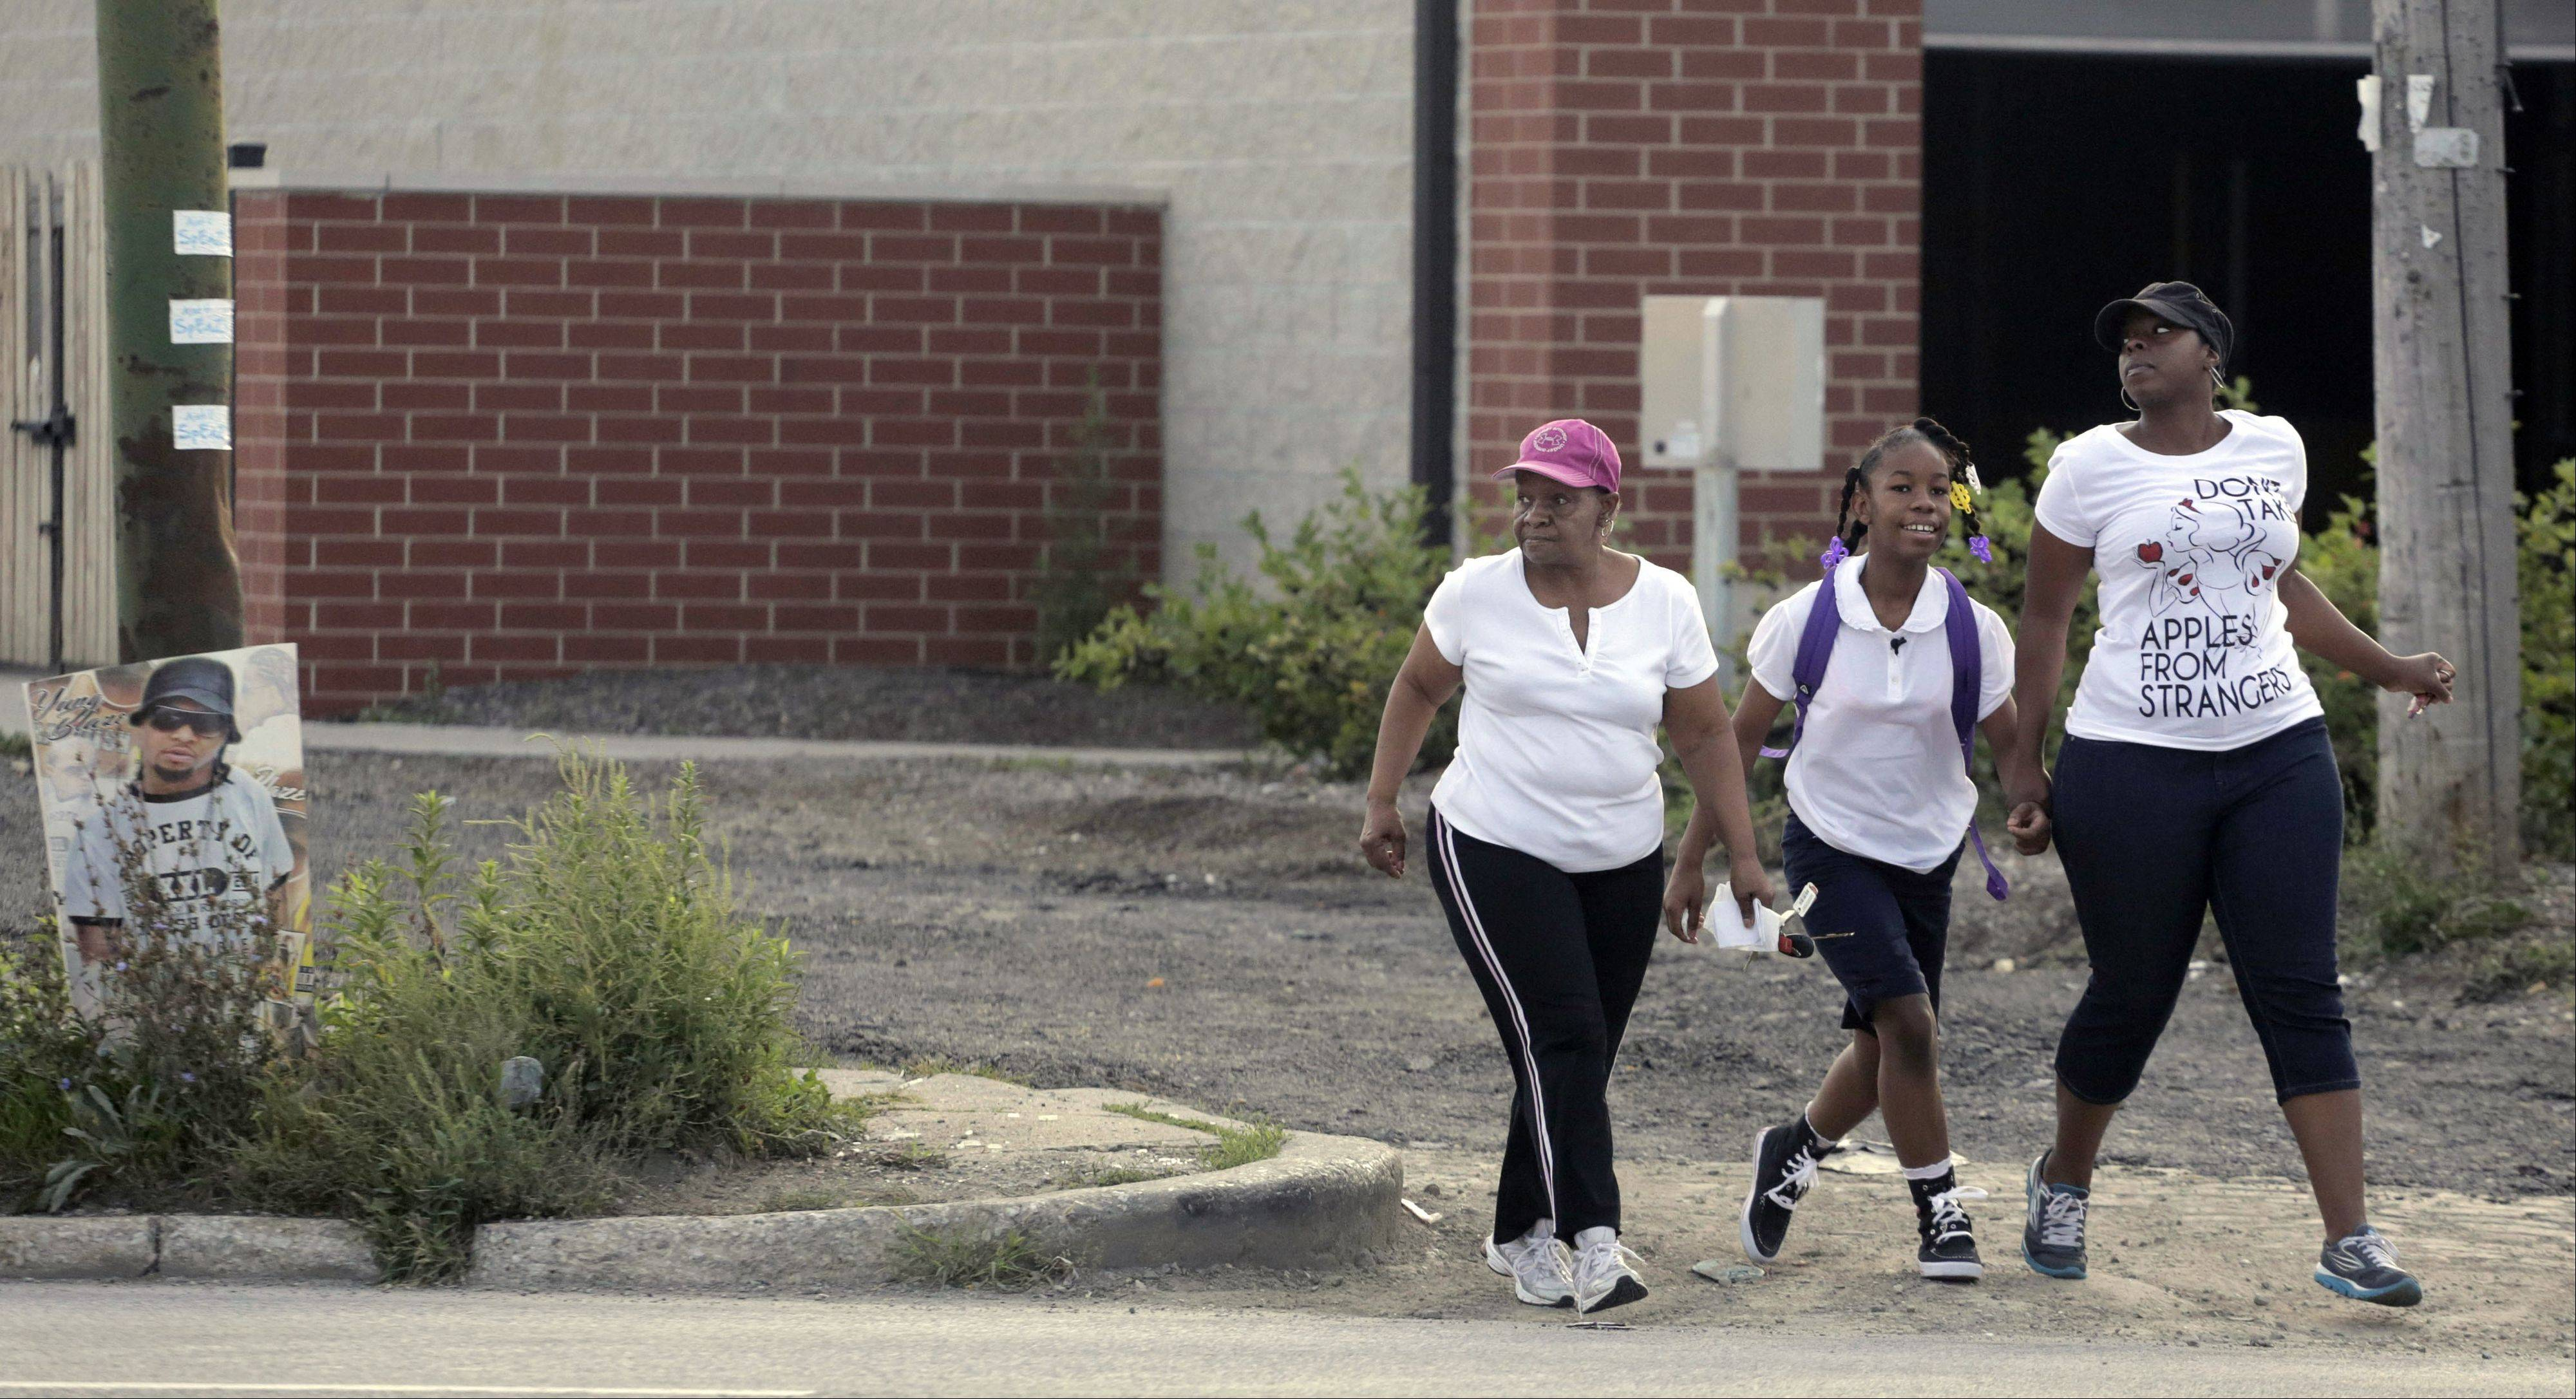 Annie Stovall, left, walks with her daughter Crystal Stovall, right, and her granddaughter Kayla Porter to Gresham Elementary School on the first day of classes Monday. The school that Kayla attended last year was closed over the summer by Chicago Public Schools.